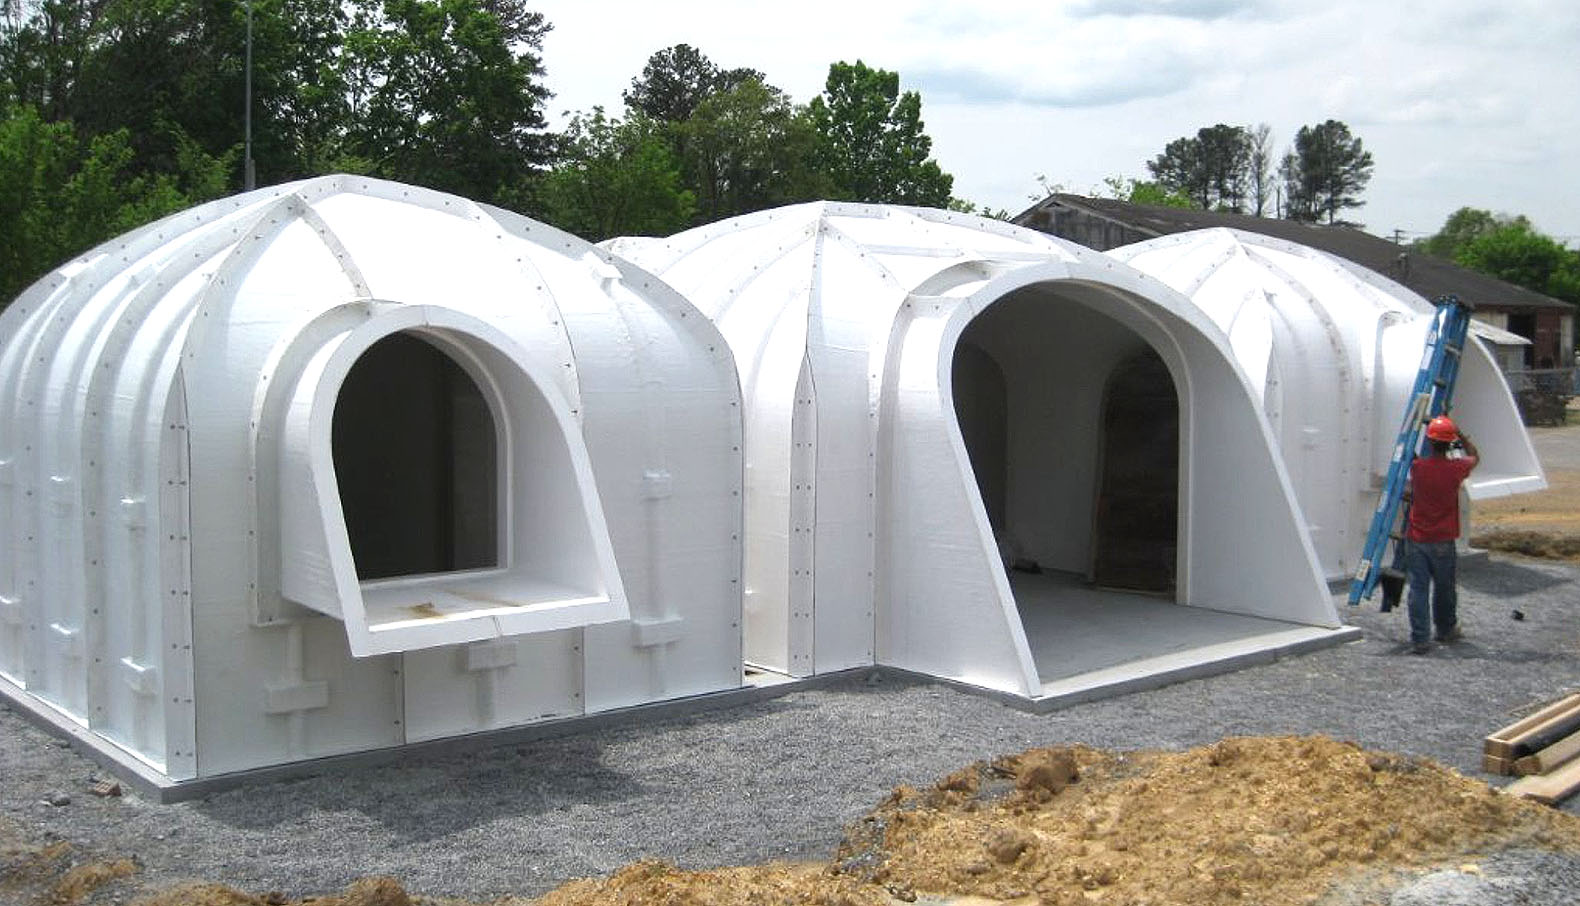 A green-roofed Hobbit home anyone can build in just 3 days